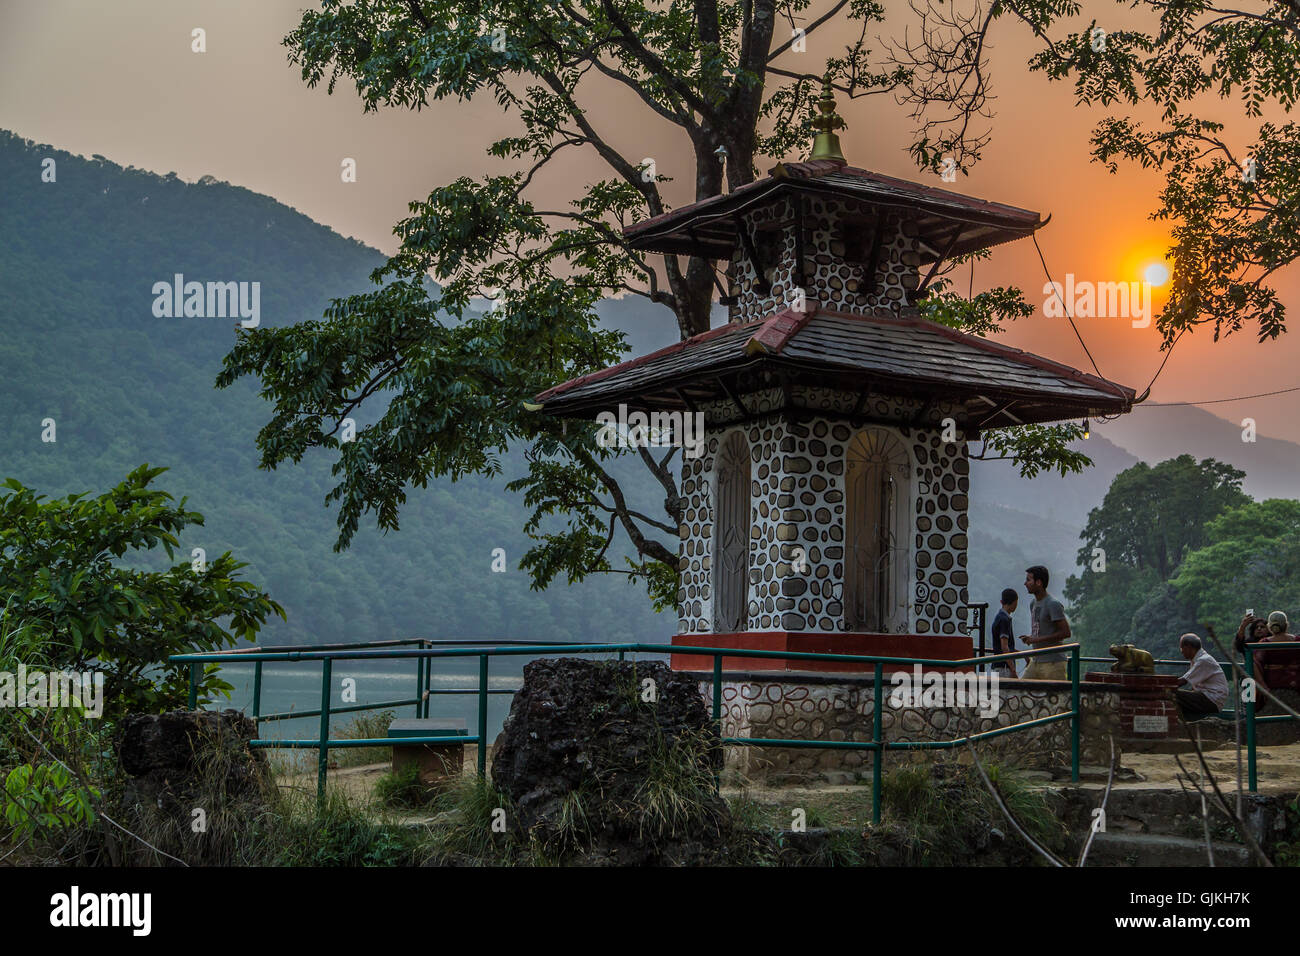 Temple at Sunset in Pokhara, Nepal - Stock Image